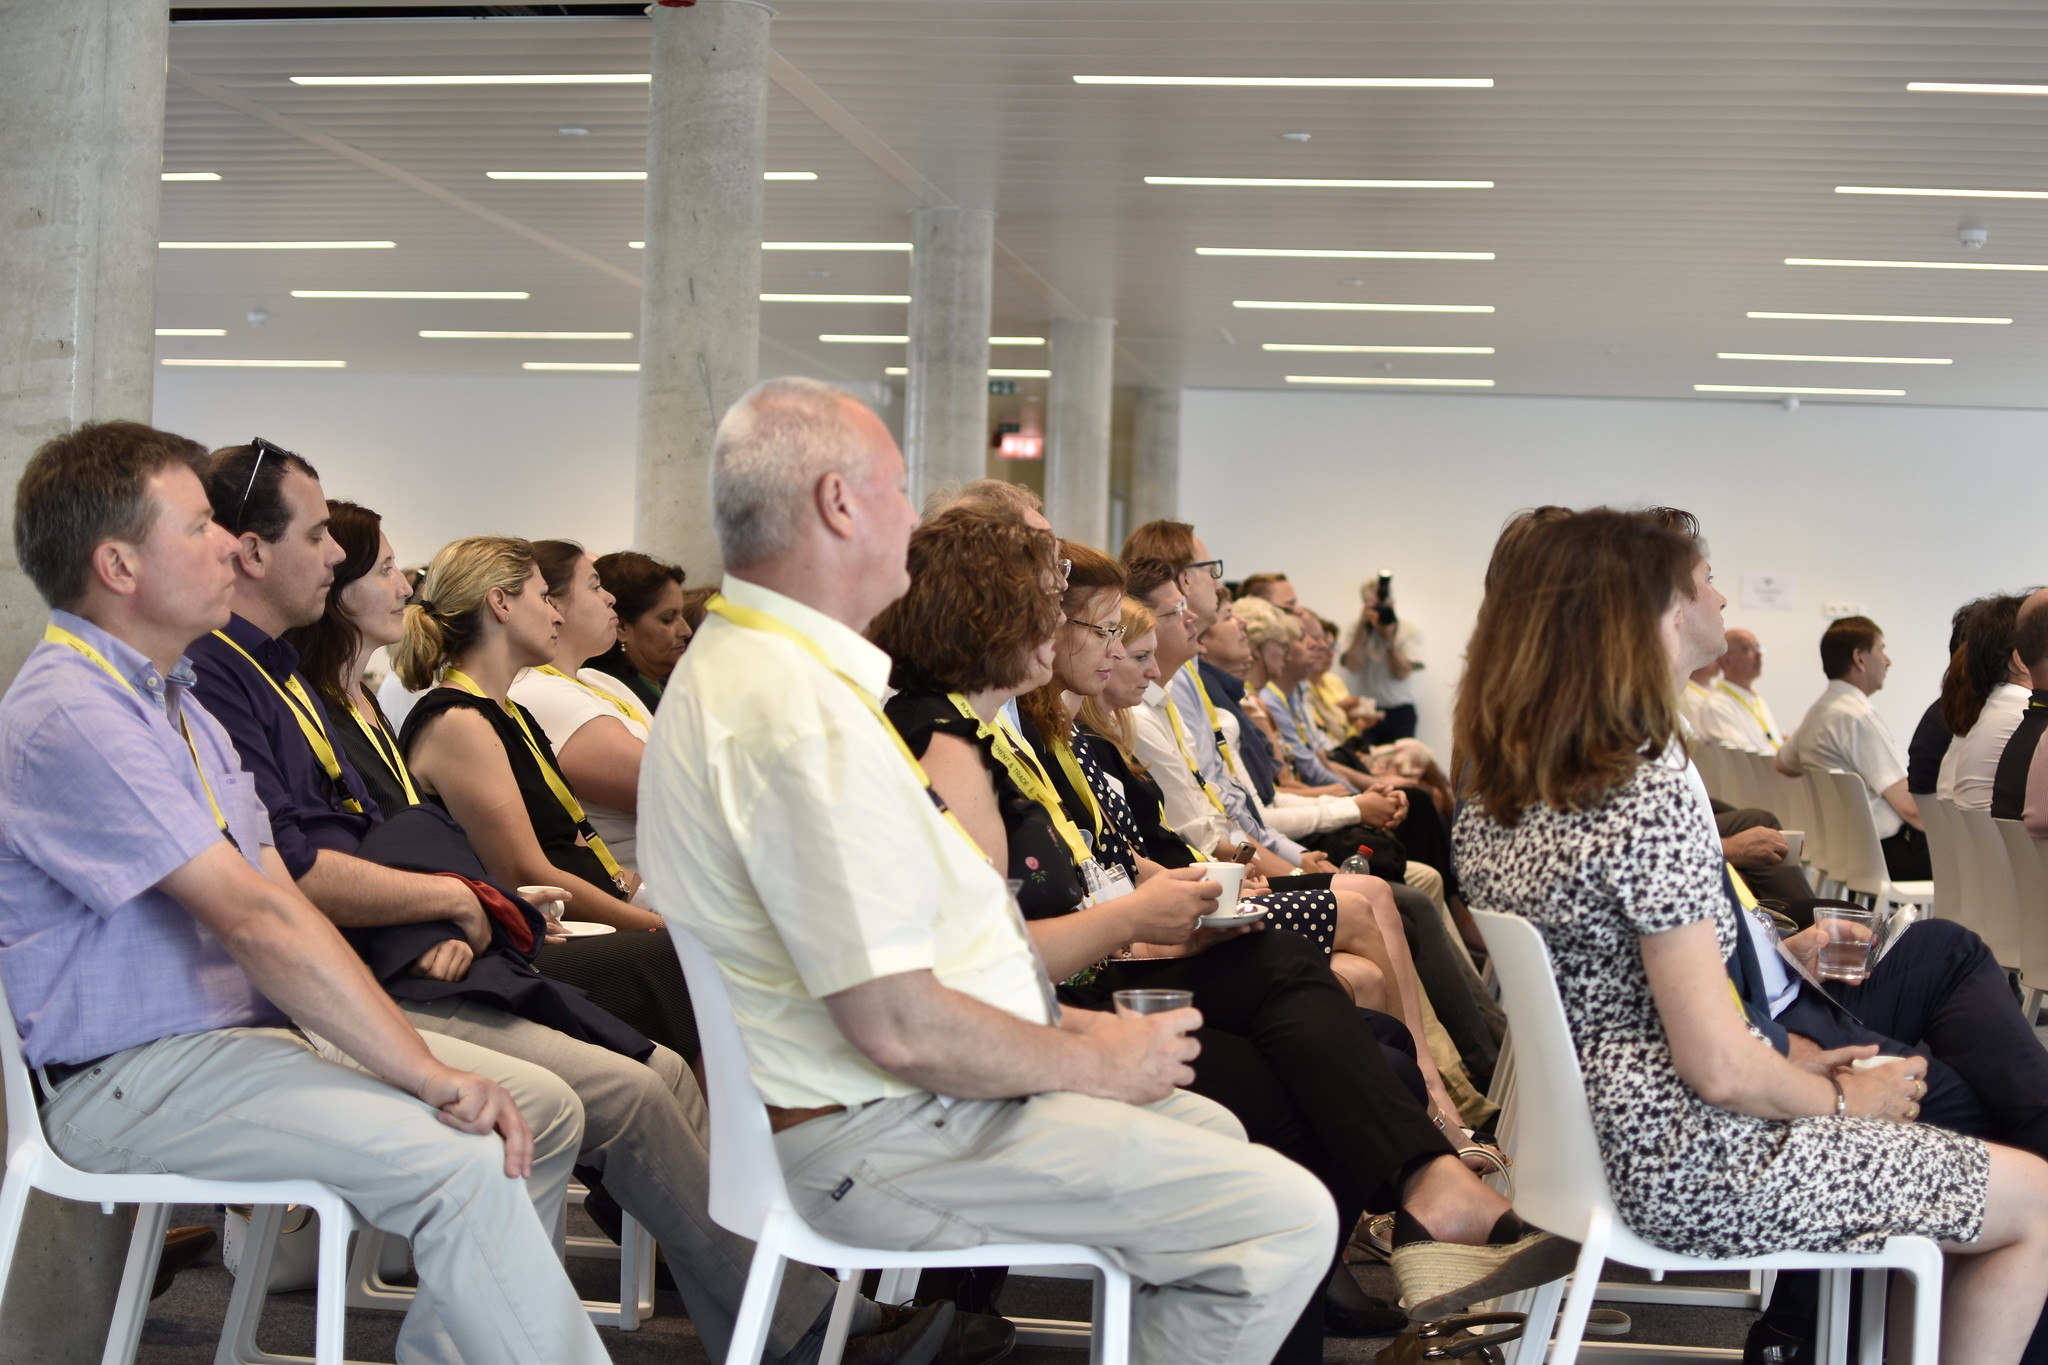 20190626 - Locate in Limburg welcomes Flanders Investment and Trade